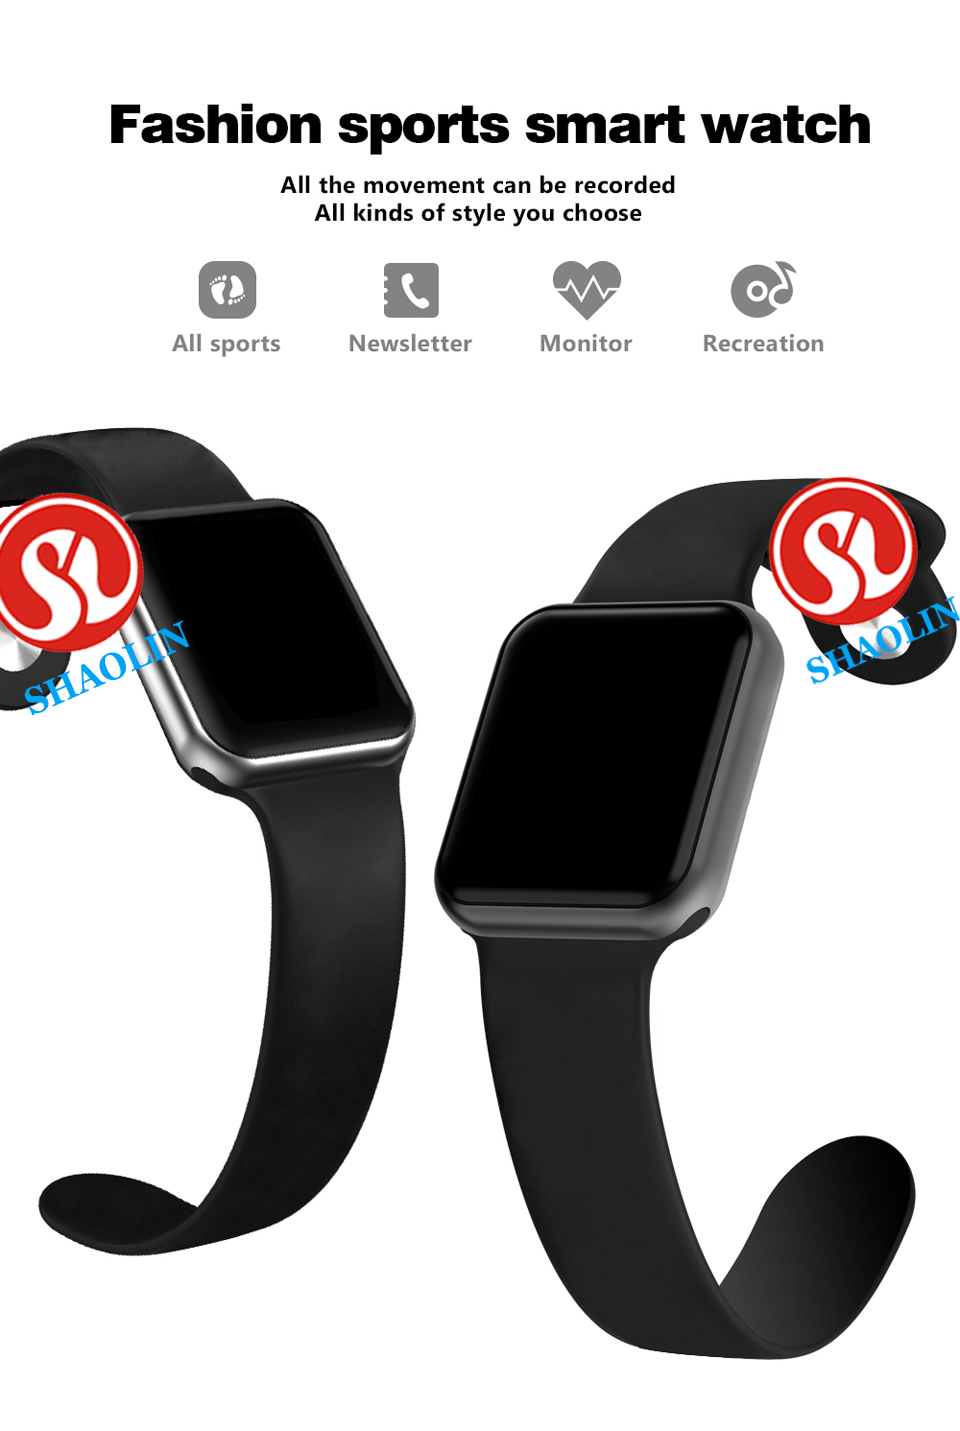 SHAOLIN Bluetooth Smart Watch Heart Rate Monitor Smartwatch Wearable Devices for apple watch iPhone IOS and Android Smartphones-01